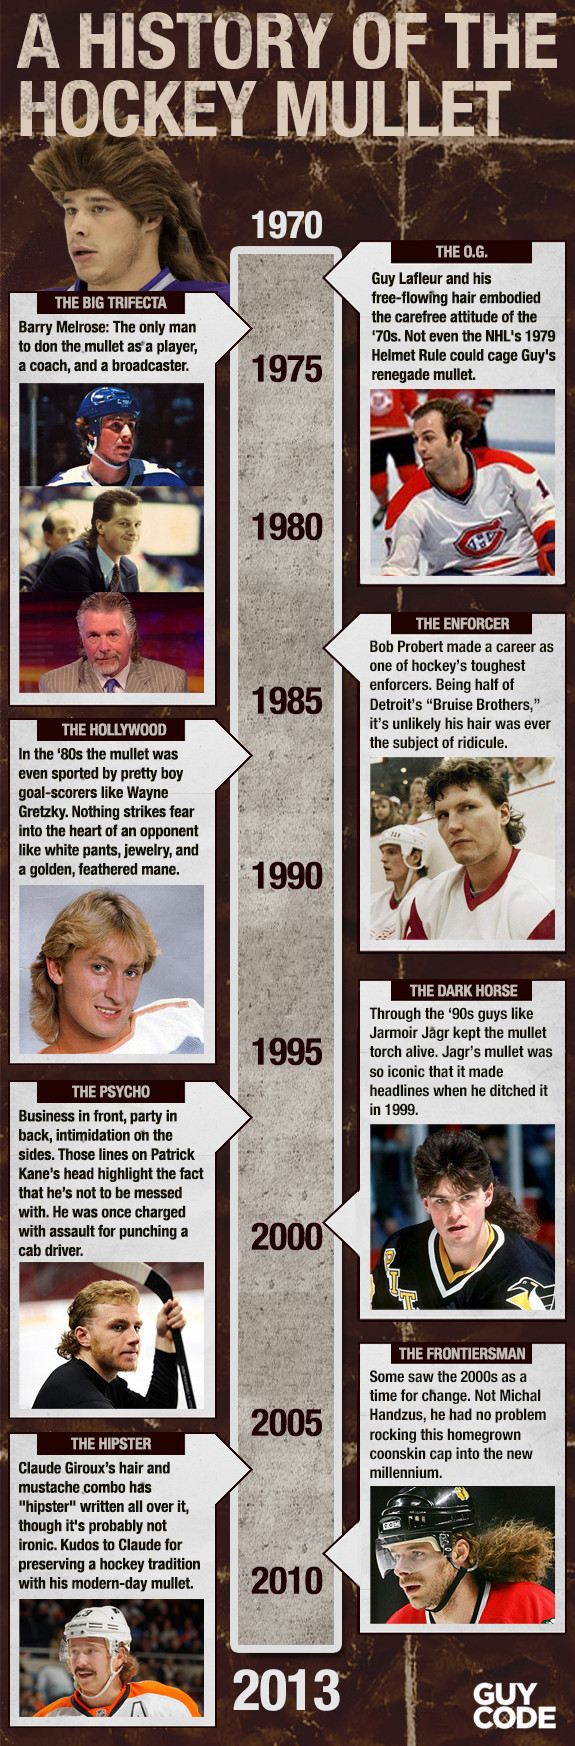 A history of the hockey mullet